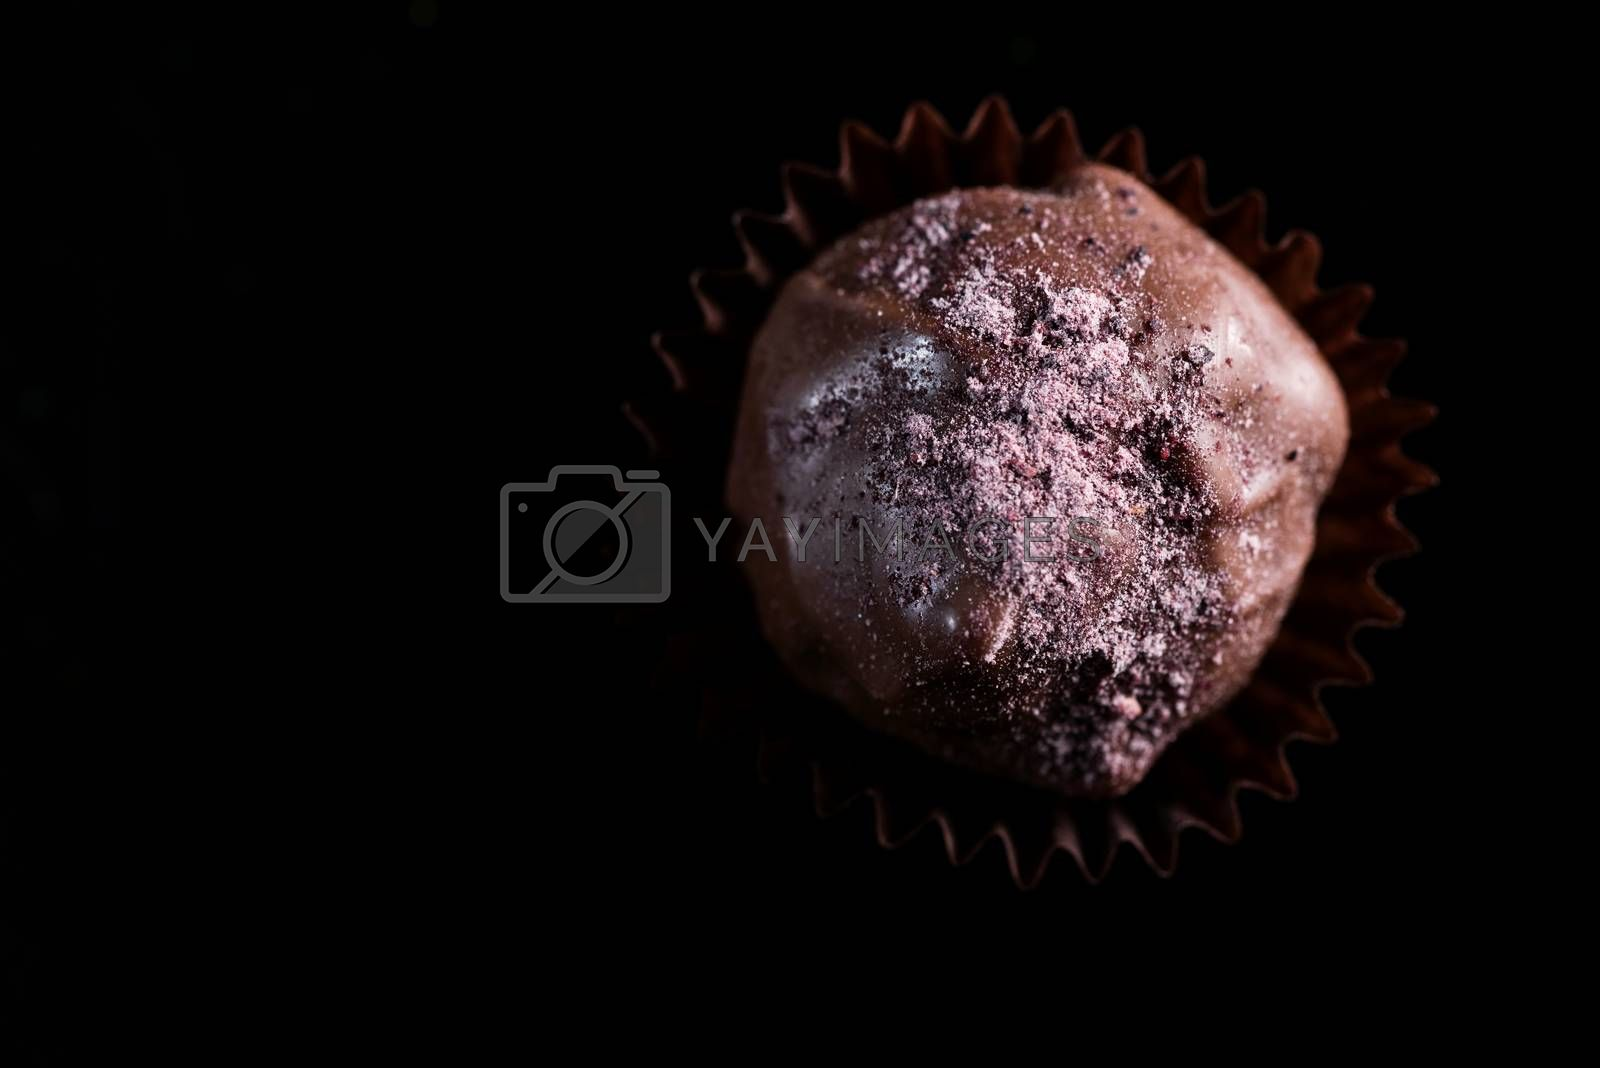 One Single Handmade Chocolate Praline Close Up View. Dark Background with Copy Space.